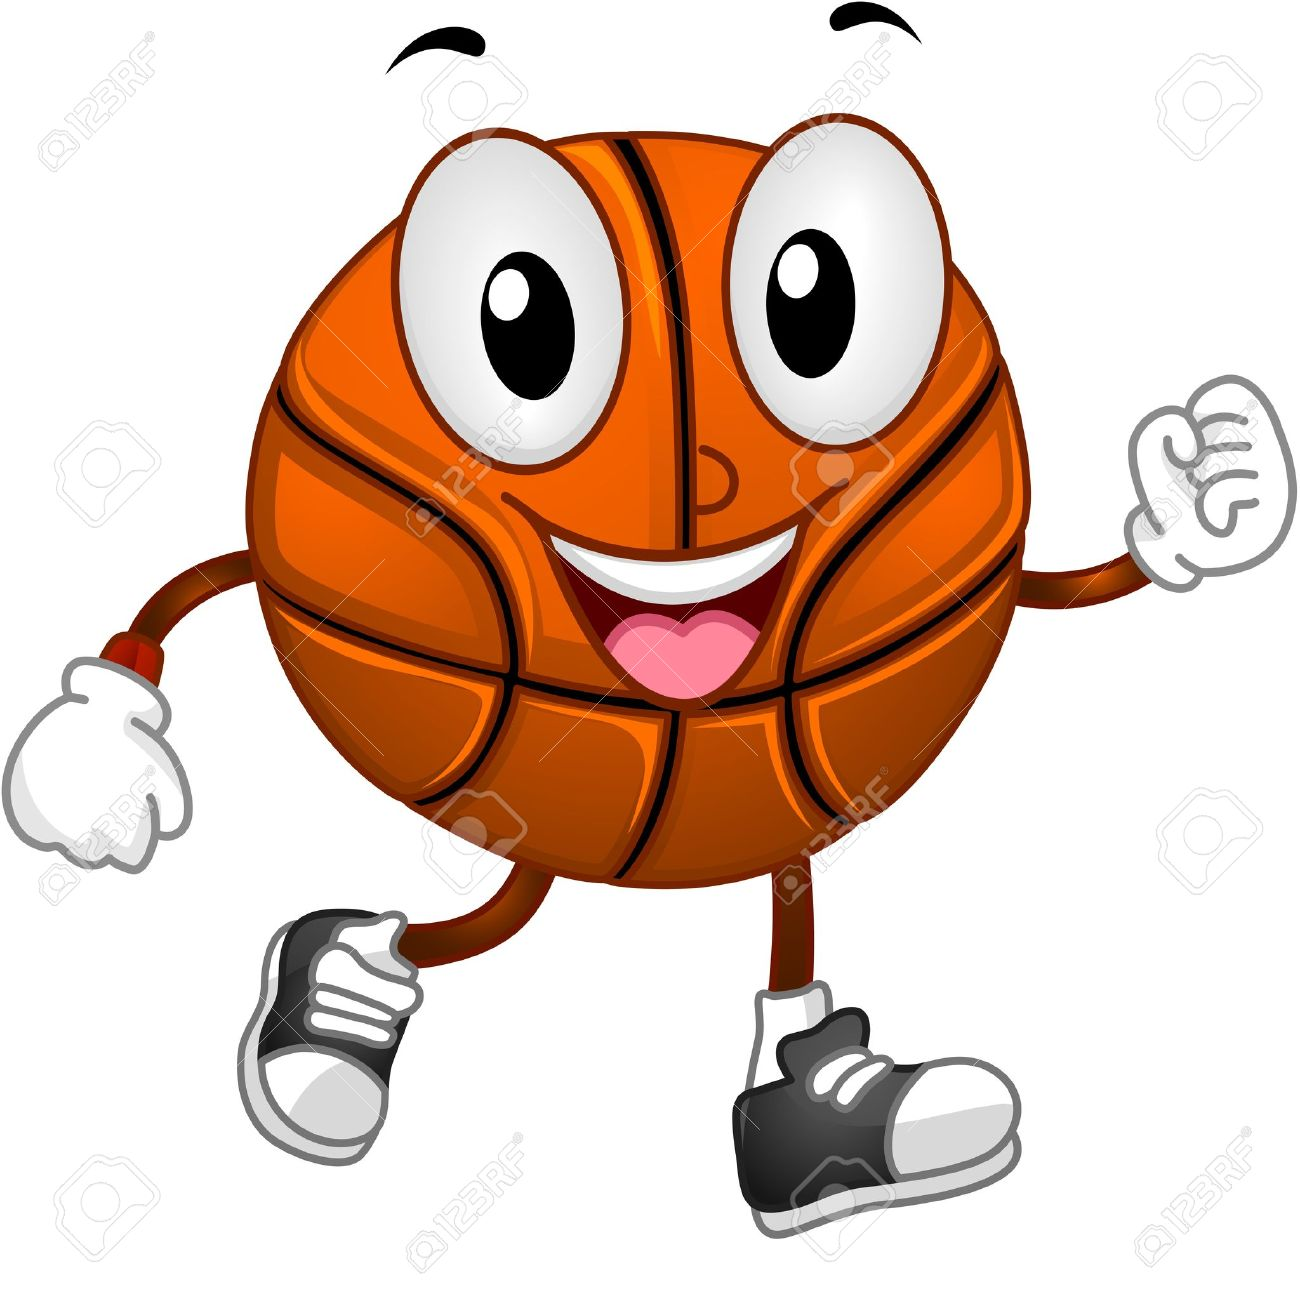 Manager free download best. Angry clipart basketball